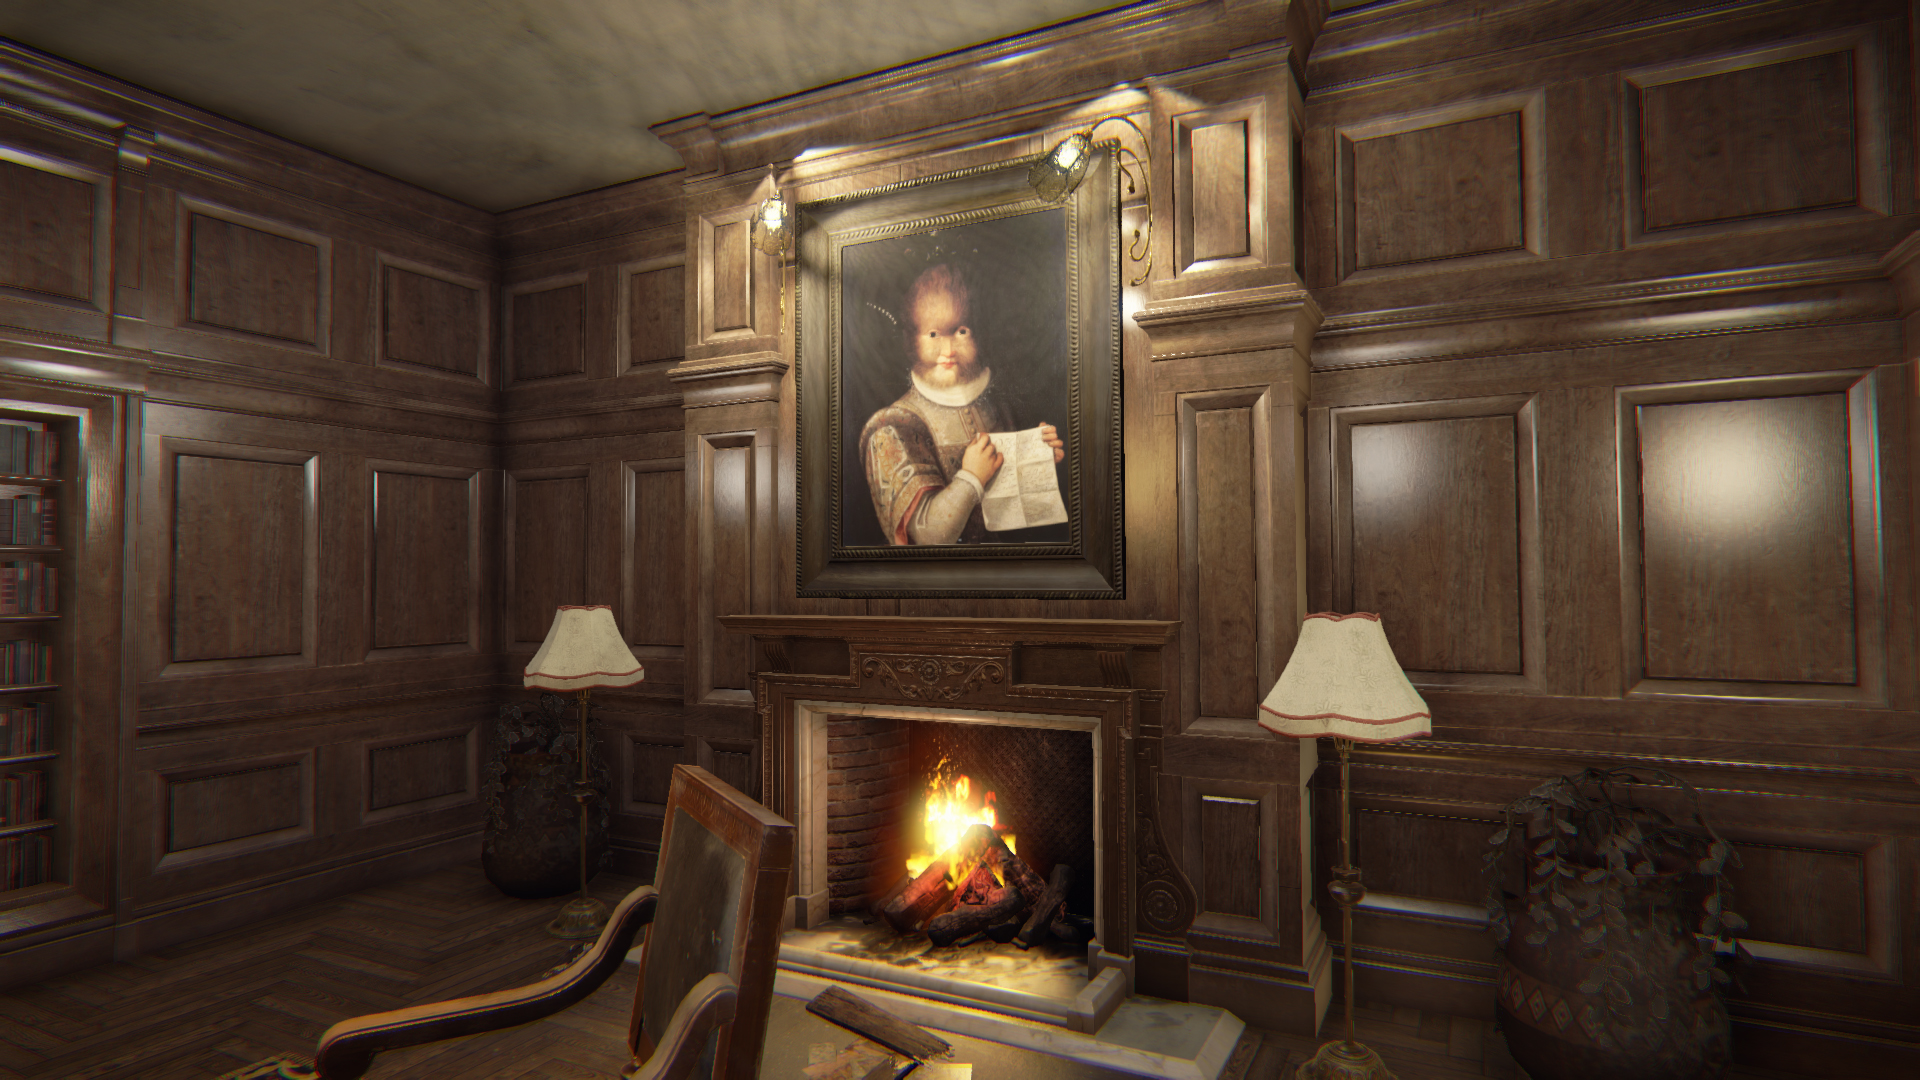 layers of fear reviewed by scherezade siobhan